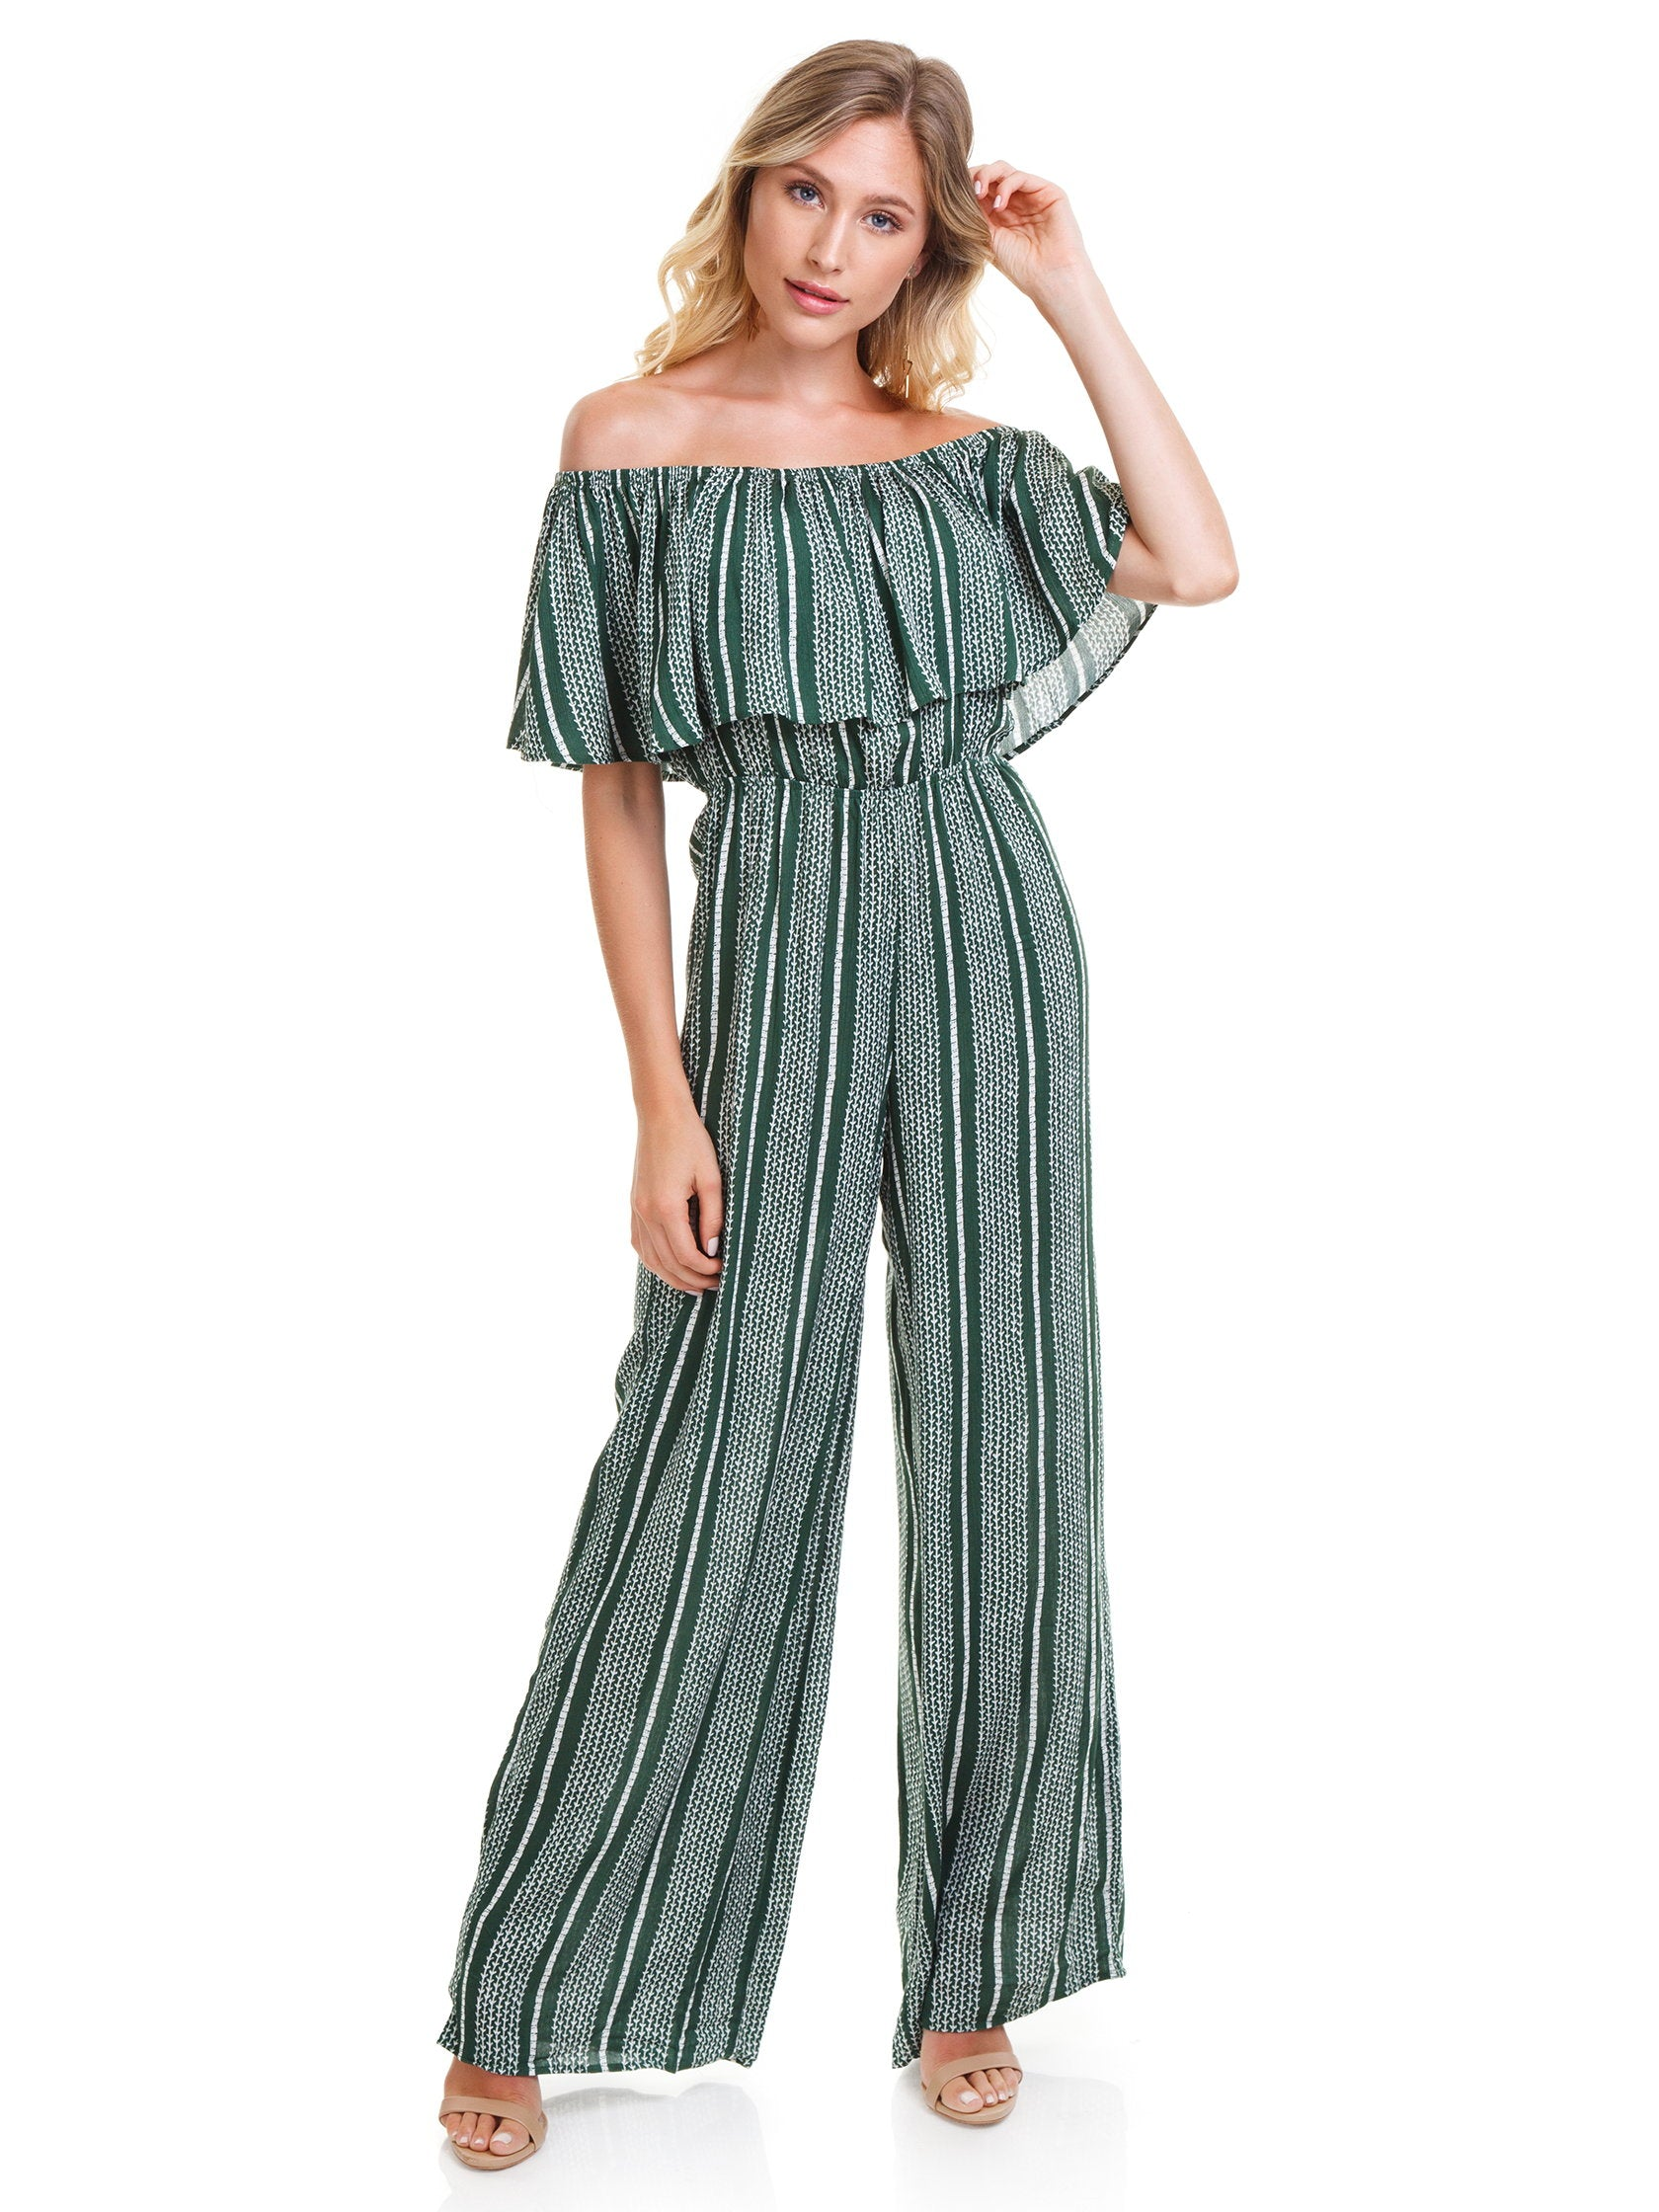 Girl outfit in a jumpsuit rental from SAGE THE LABEL called Josephine Jumpsuit